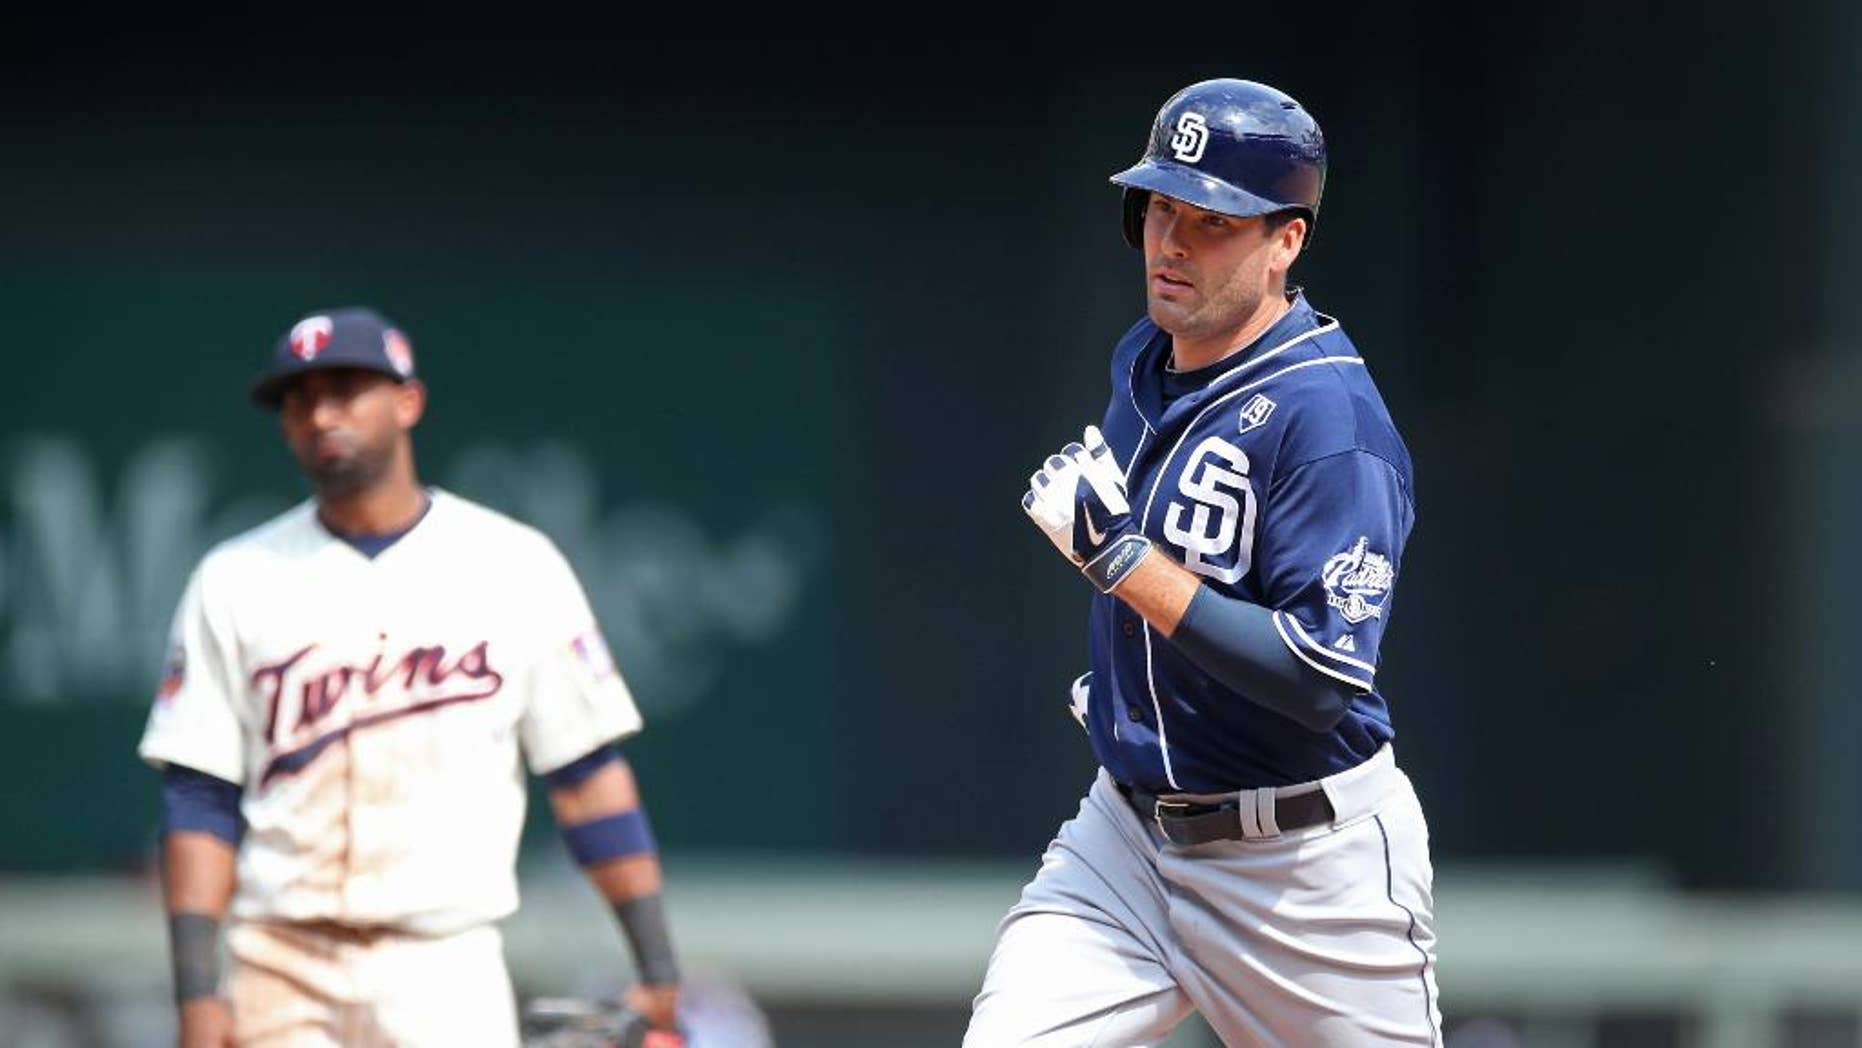 San Diego Padres' Seth Smith, right, rounds the bases on his decisive solo home run off Minnesota Twins relief pitcher Anthony Swarzak in the 10th inning of a baseball game, Wednesday, Aug. 6, 2014, in Minneapolis. The Padres won 5-4.  (AP Photo/Jim Mone)